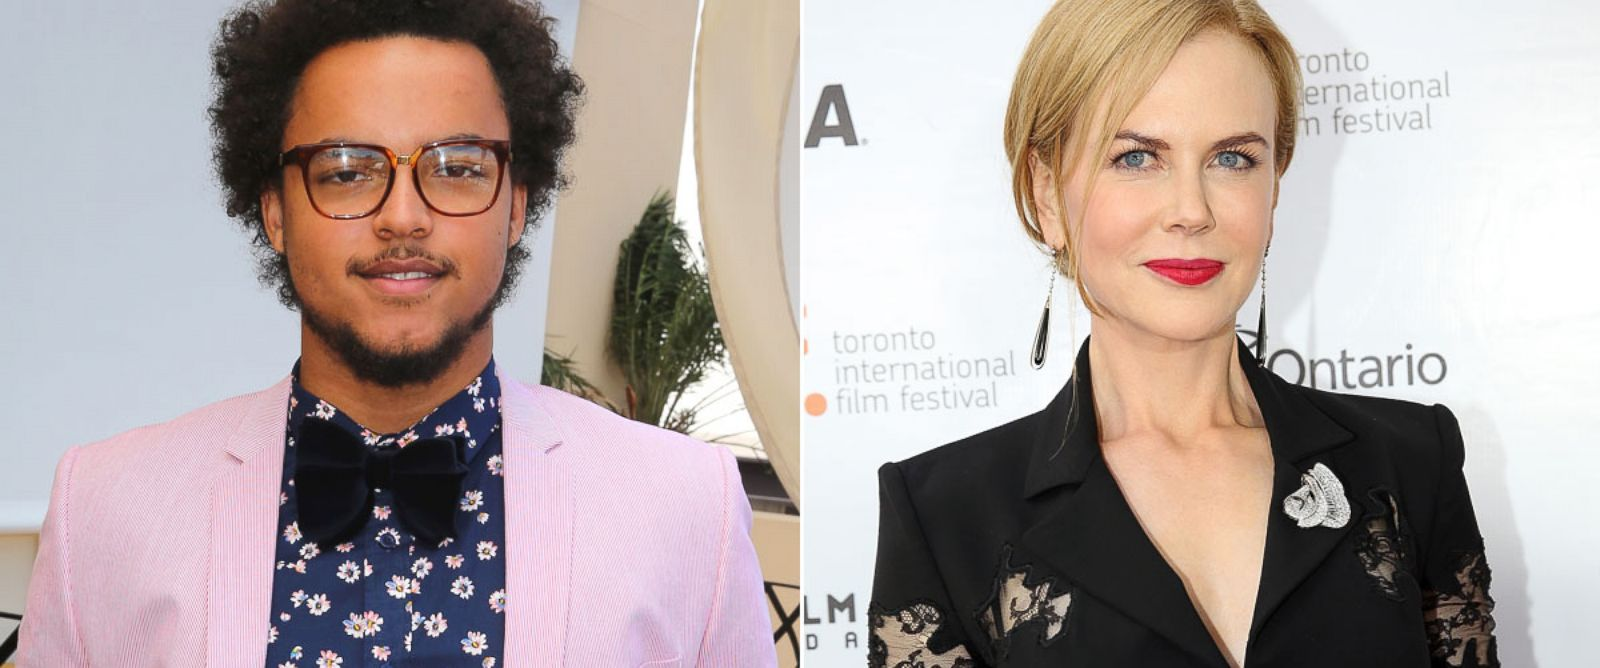 PHOTO: From left, Connor Cruise in Melbourne, Australia, and Nicole Kidman in Toronto, Canada